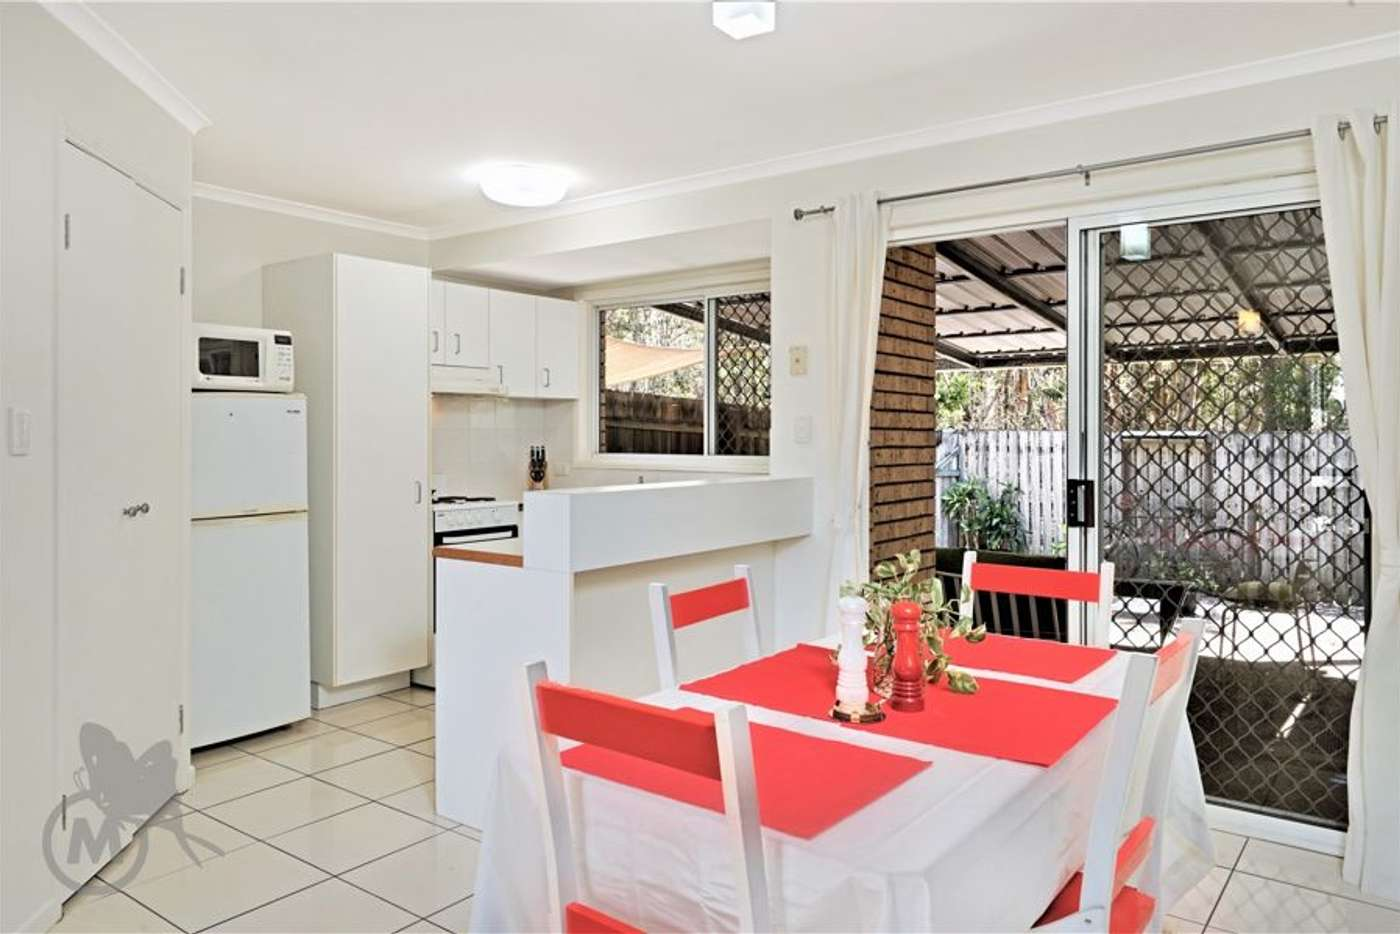 Fifth view of Homely townhouse listing, 17/17-19 Burpengary Road, Burpengary QLD 4505